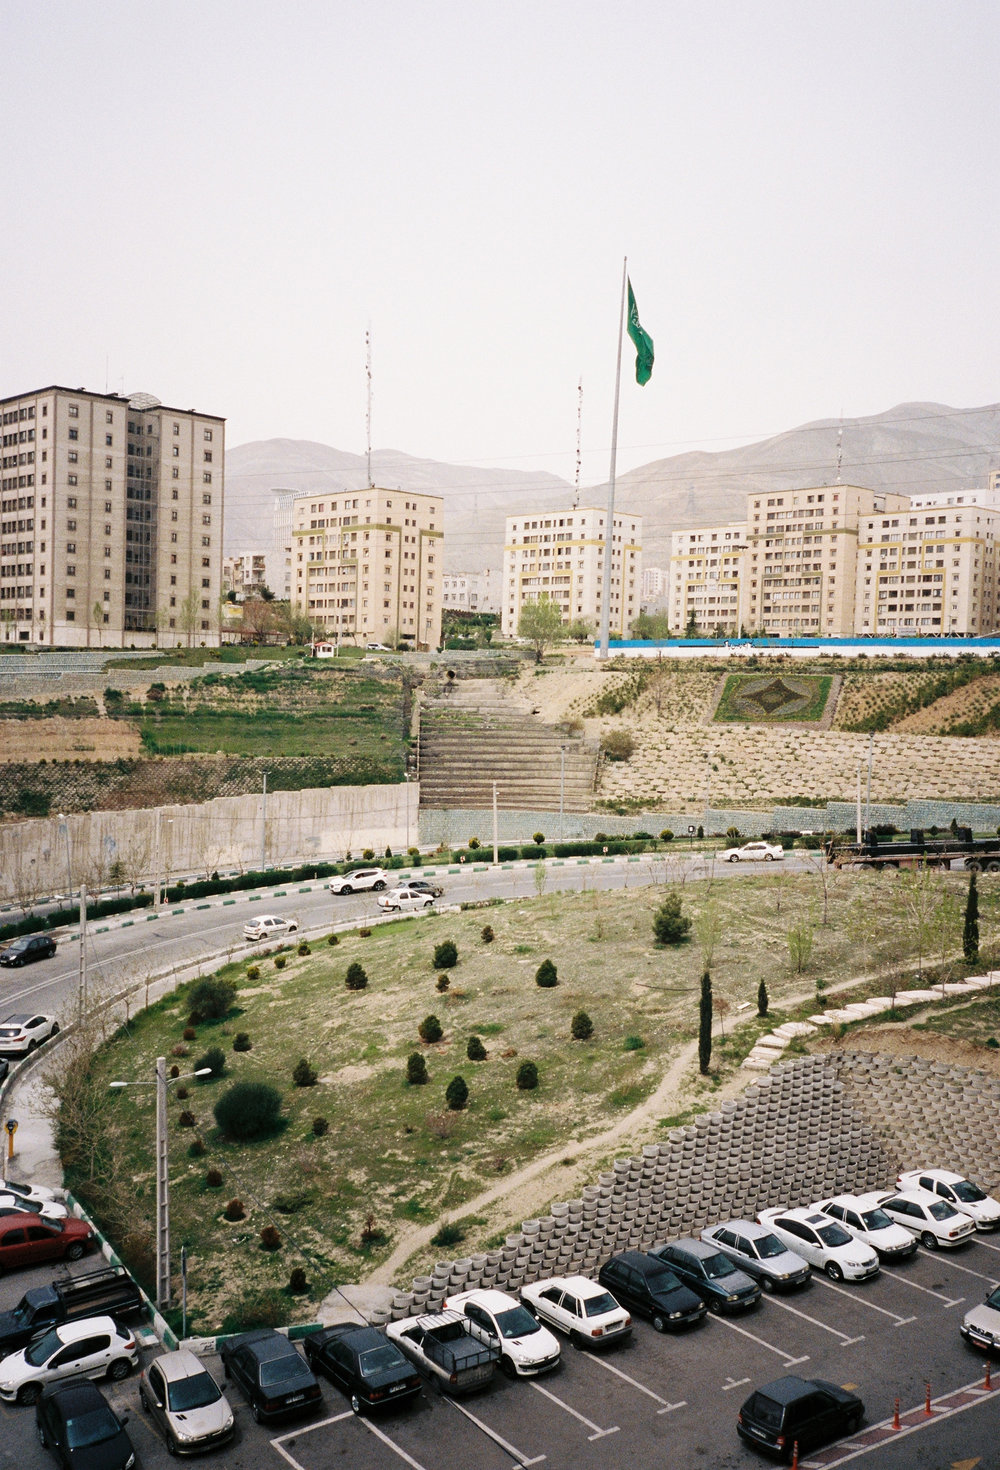 District of Sa'adat Abad, north Tehran, 2017. © Laure d'Utruy